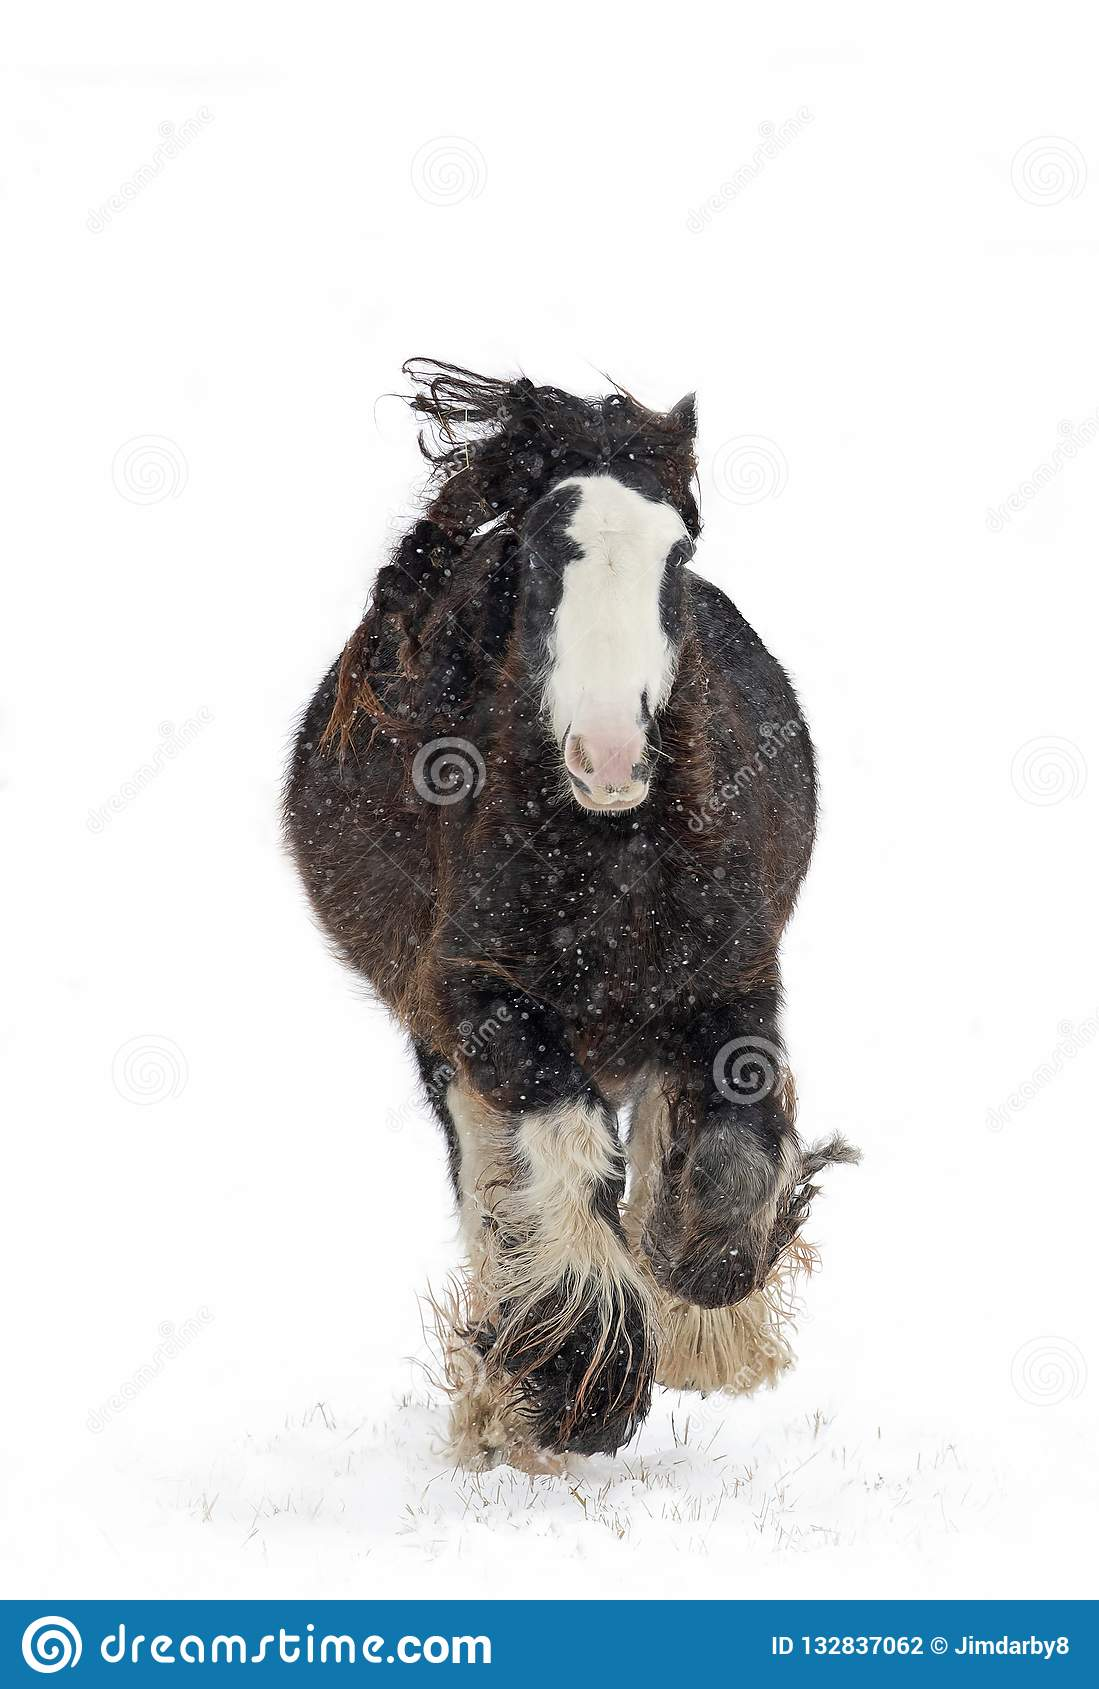 A Clydesdale Horse Running In The Falling Snow In Winter In Canada Stock Photo Image Of Wild Mammal 132837062